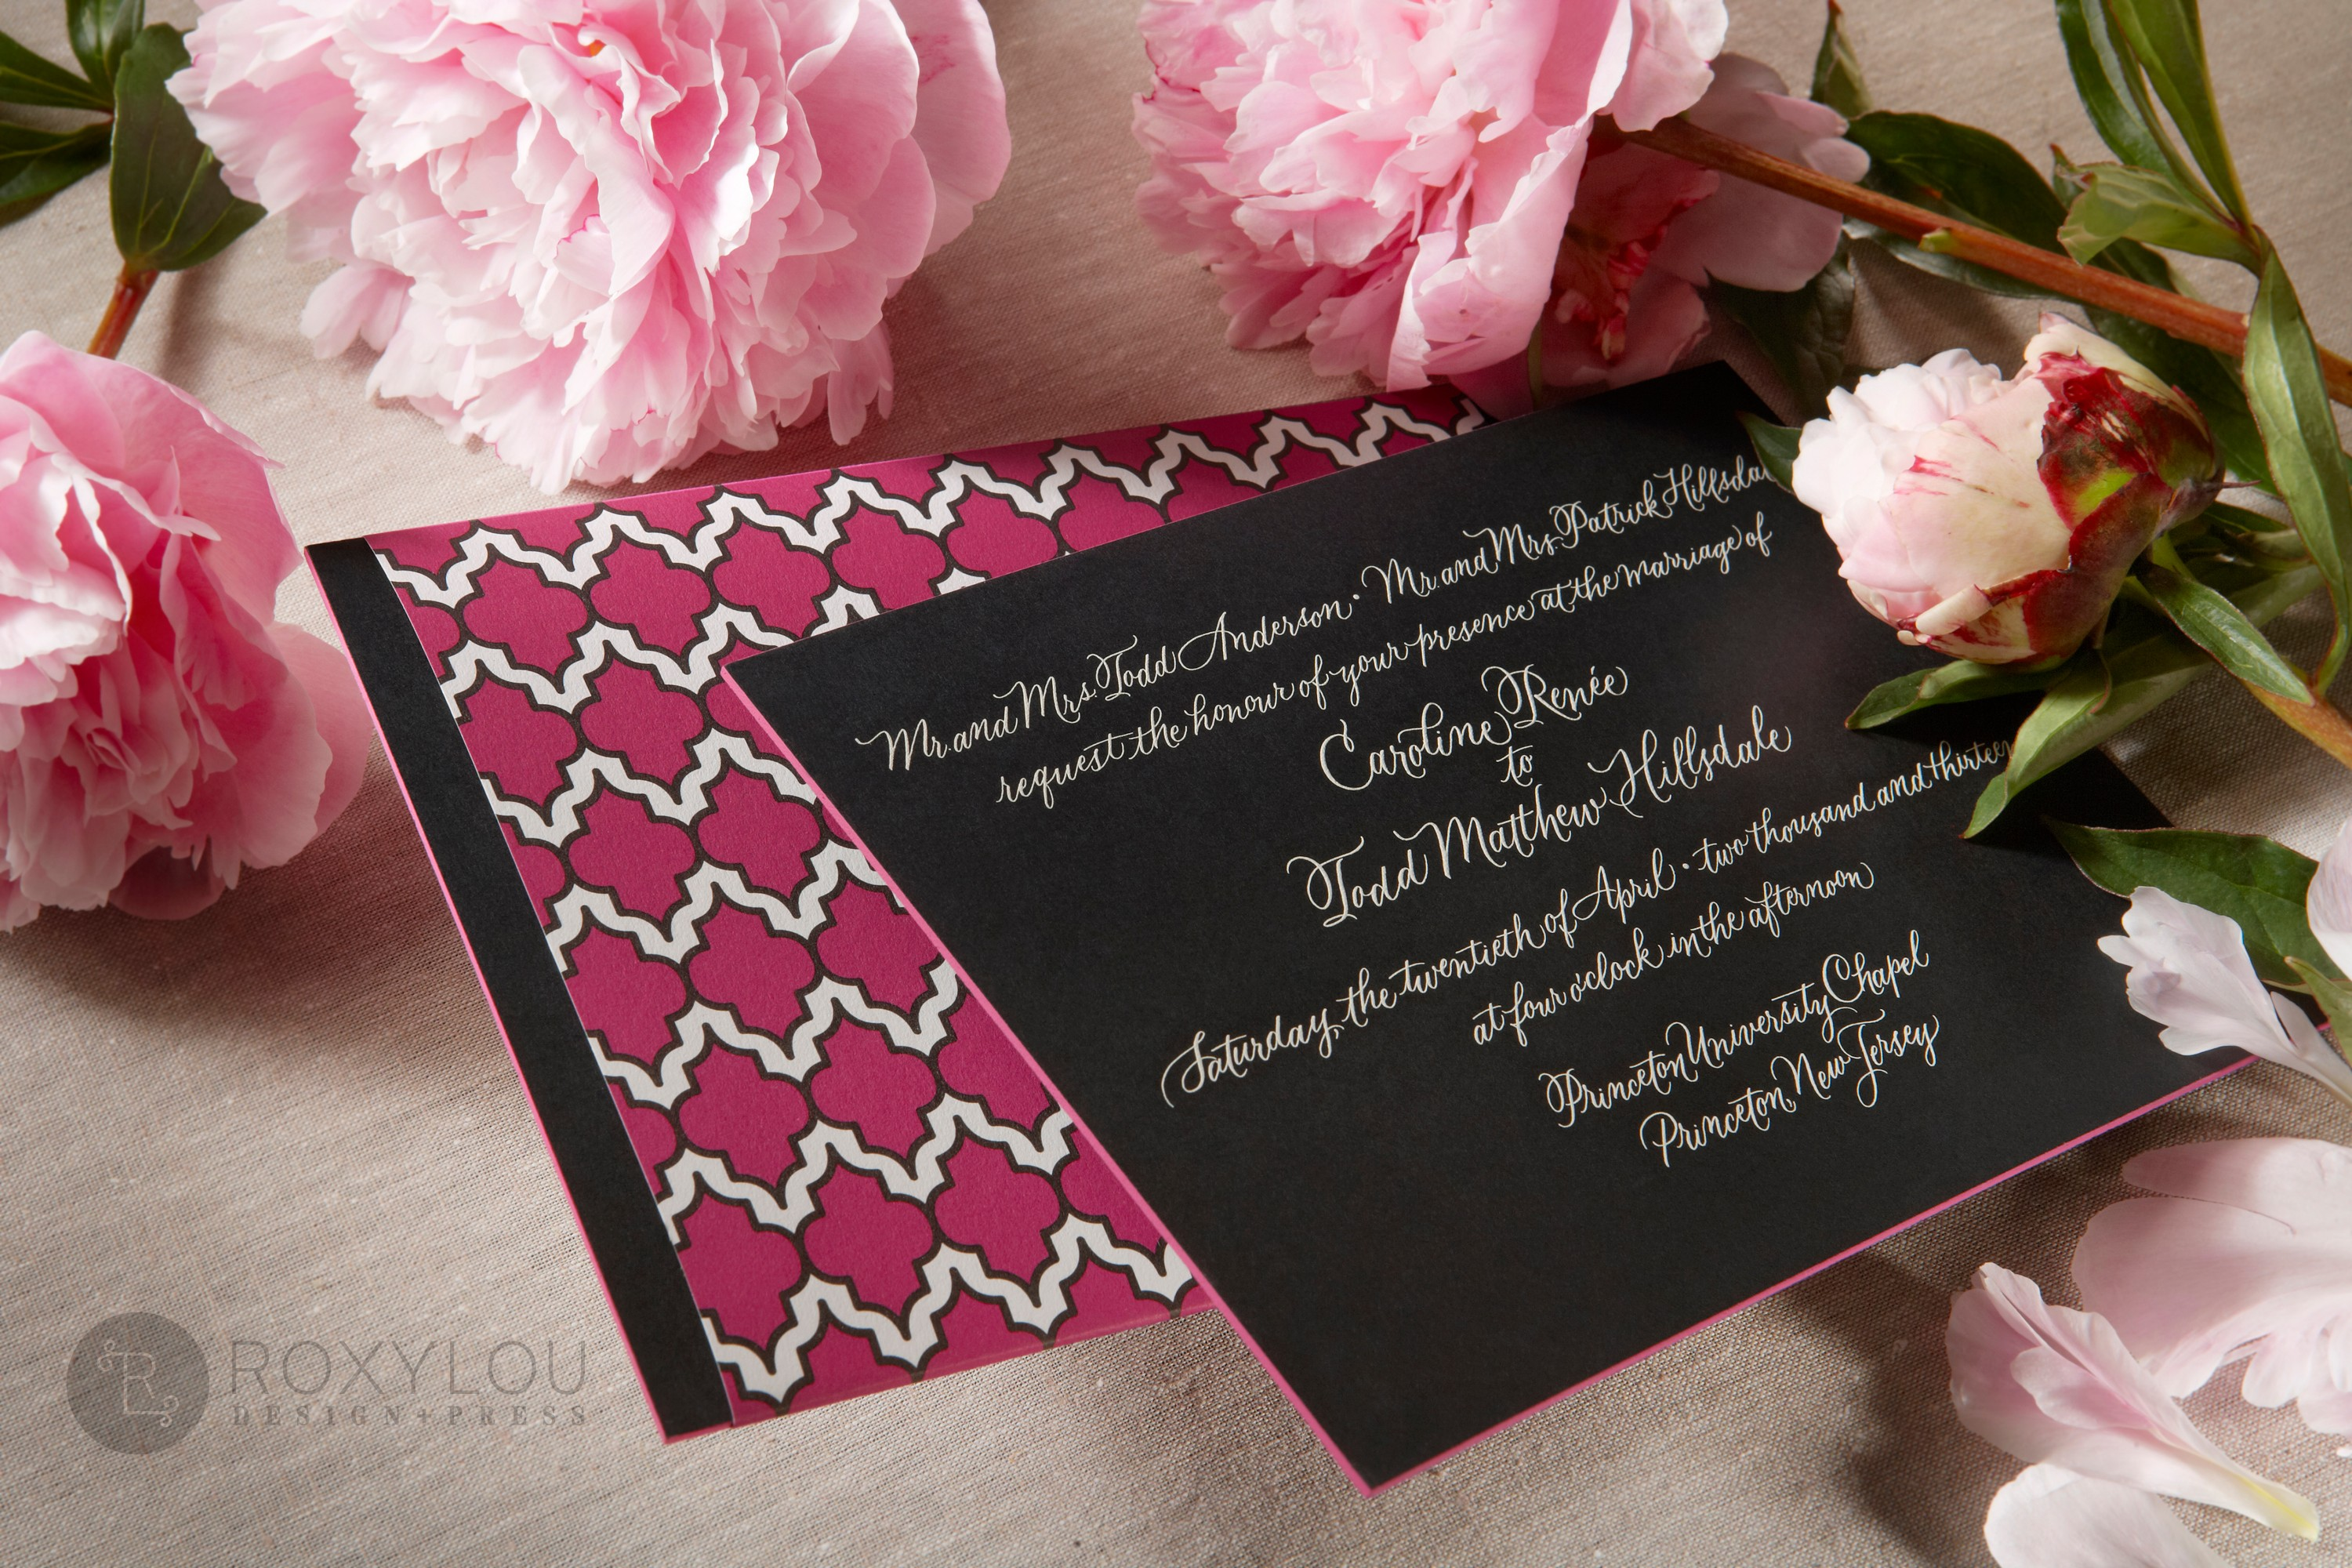 The Moxie invitation suite features a stunningly thick engraved invitation card with contrast painted edge.  Invite and inserts are neatly tucked into a geometric pattern wrap and then into a lined inner envelope and an engraved outer envelope.  Truly stunning in fuchsia and black, but can be created in any color scheme.